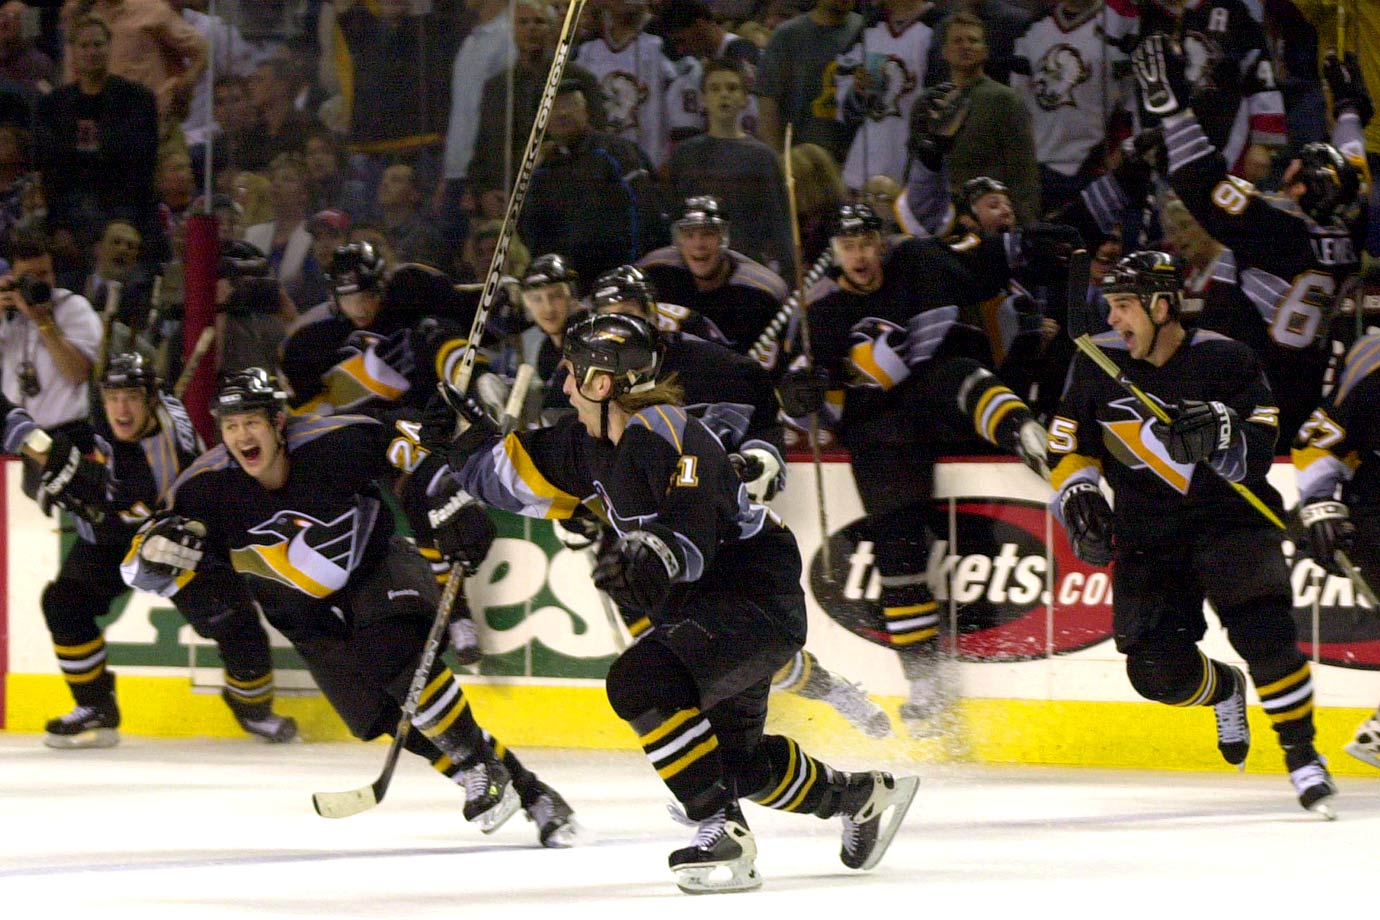 "Mario Lemieux's goal with 1 minute, 18 seconds left in Game 6 forced a decisive showdown against Dominik Hasek and the Sabres in Buffalo. ""It's the most exciting thing in hockey,"" Hasek said. ""We only have to win the game."" Alas, Penguins blueliner Darius Kasparaitis prevented that by beating Hasek in OT for his first career playoff goal."